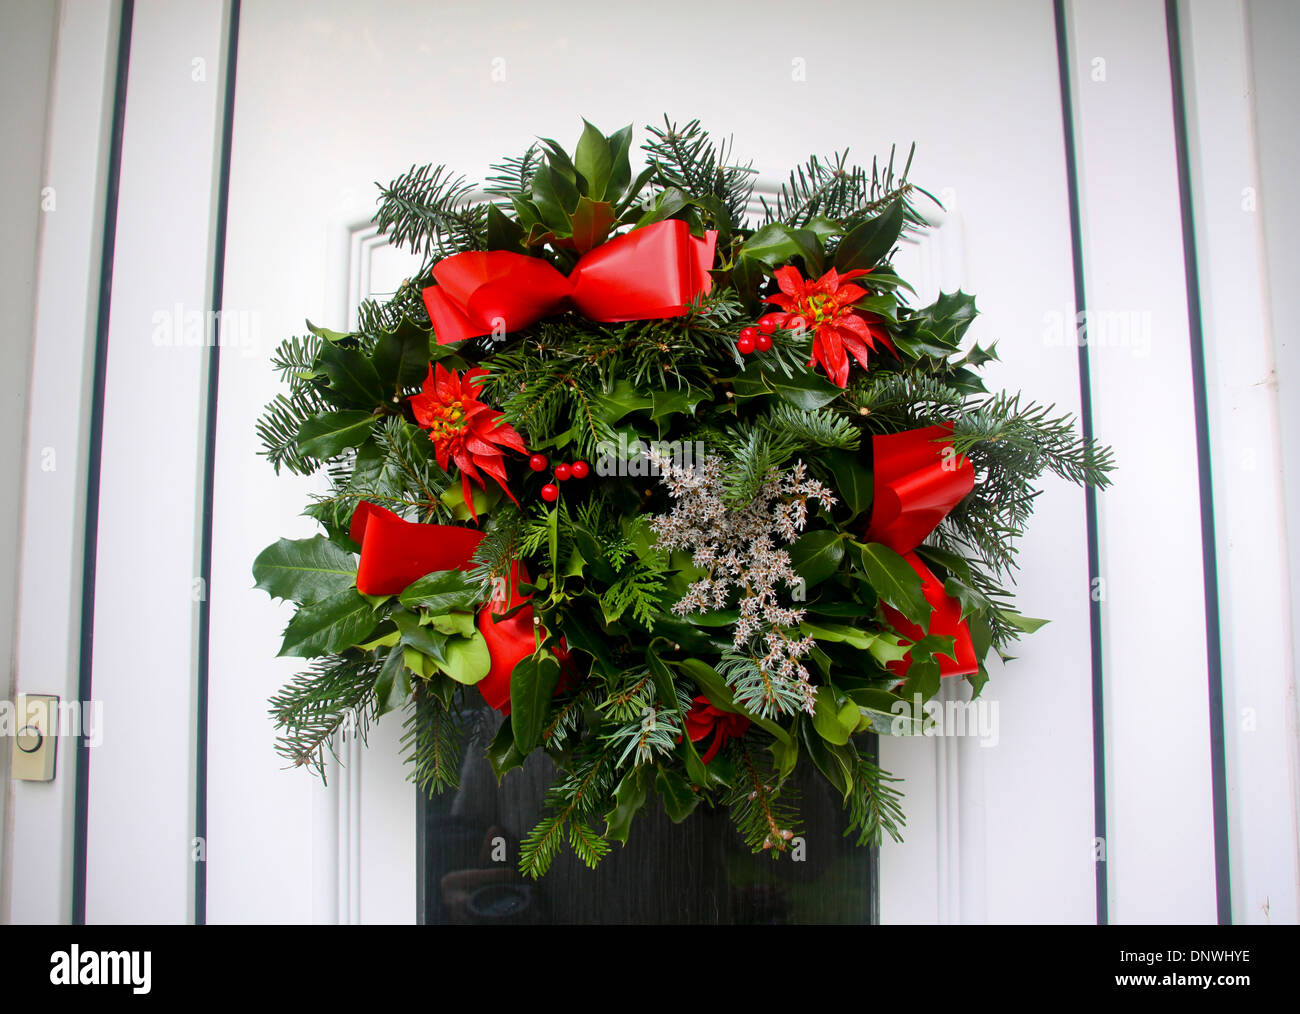 Christmas holly wreath on uPVC front door - Stock Image